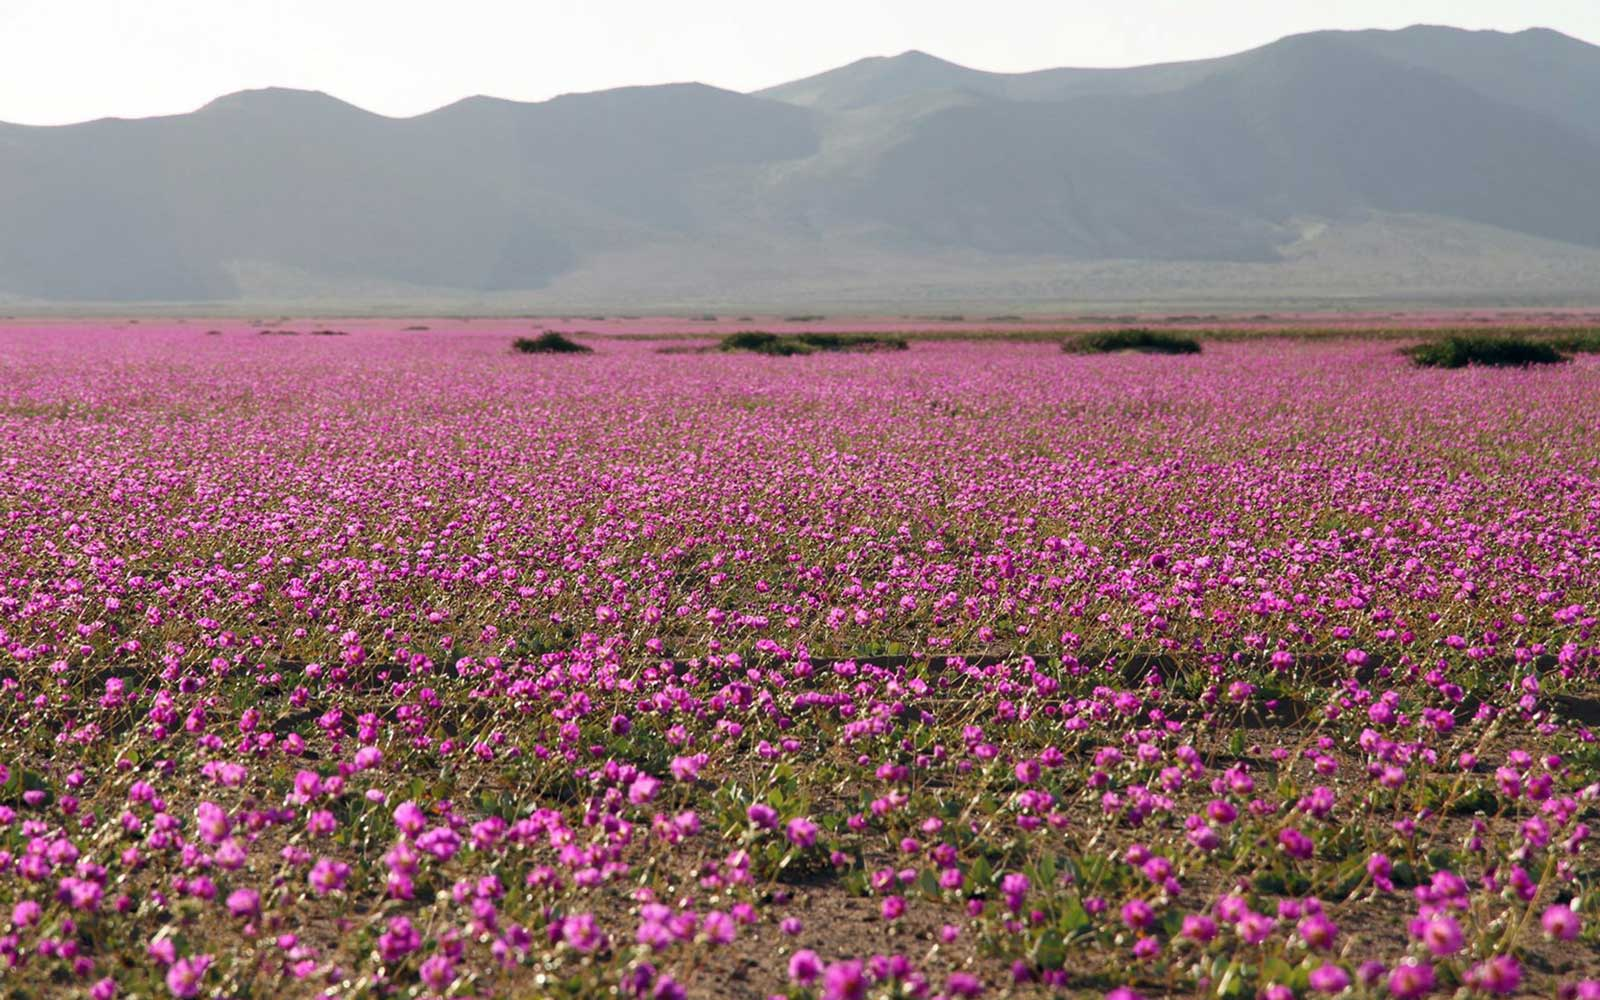 Chile's Atacama Desert is Once Again Covered in Wildflower Blooms